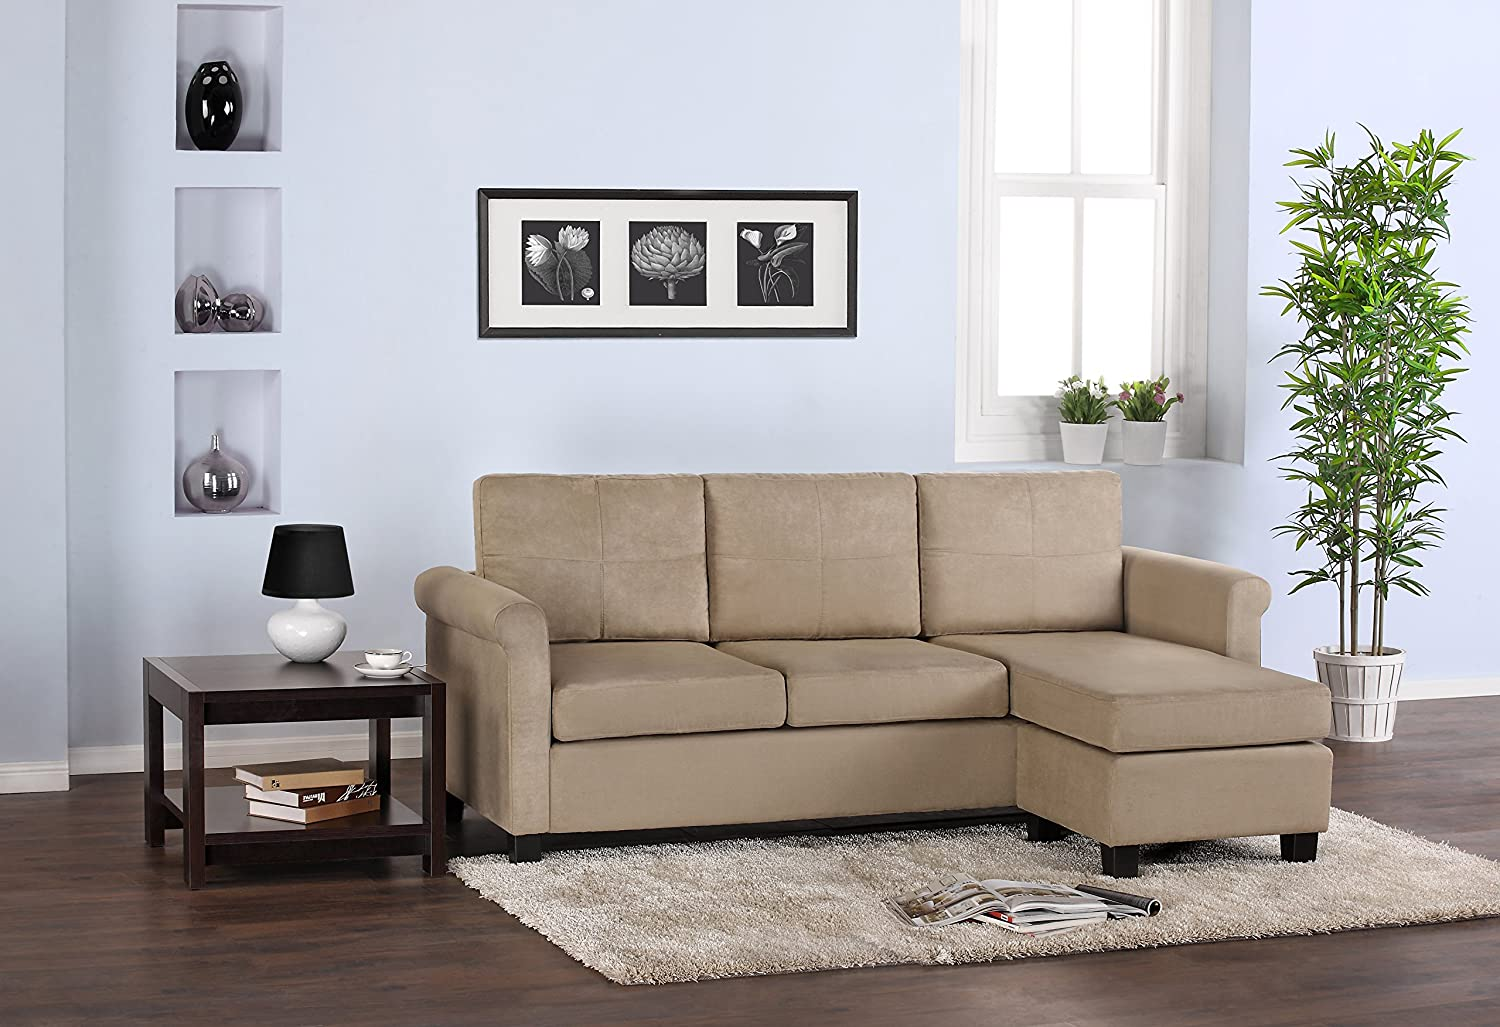 amazoncom dorel asia versatile small spaces sectional sofa taupe kitchen u0026 dining